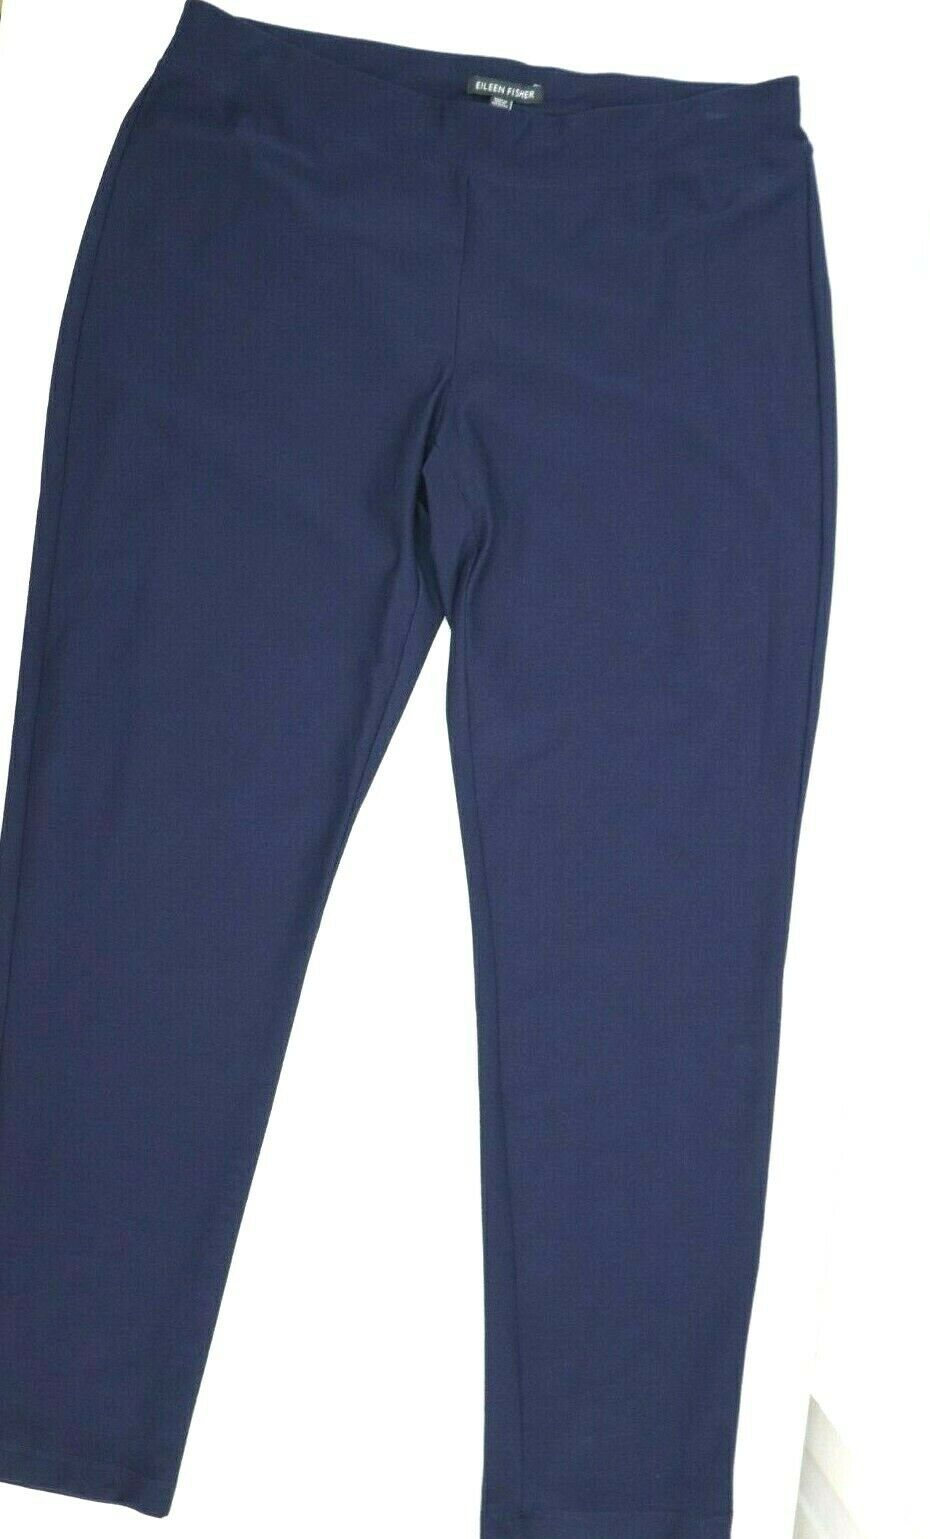 Eileen Fisher Women's Petite Large Navy Blue Pants Stretch